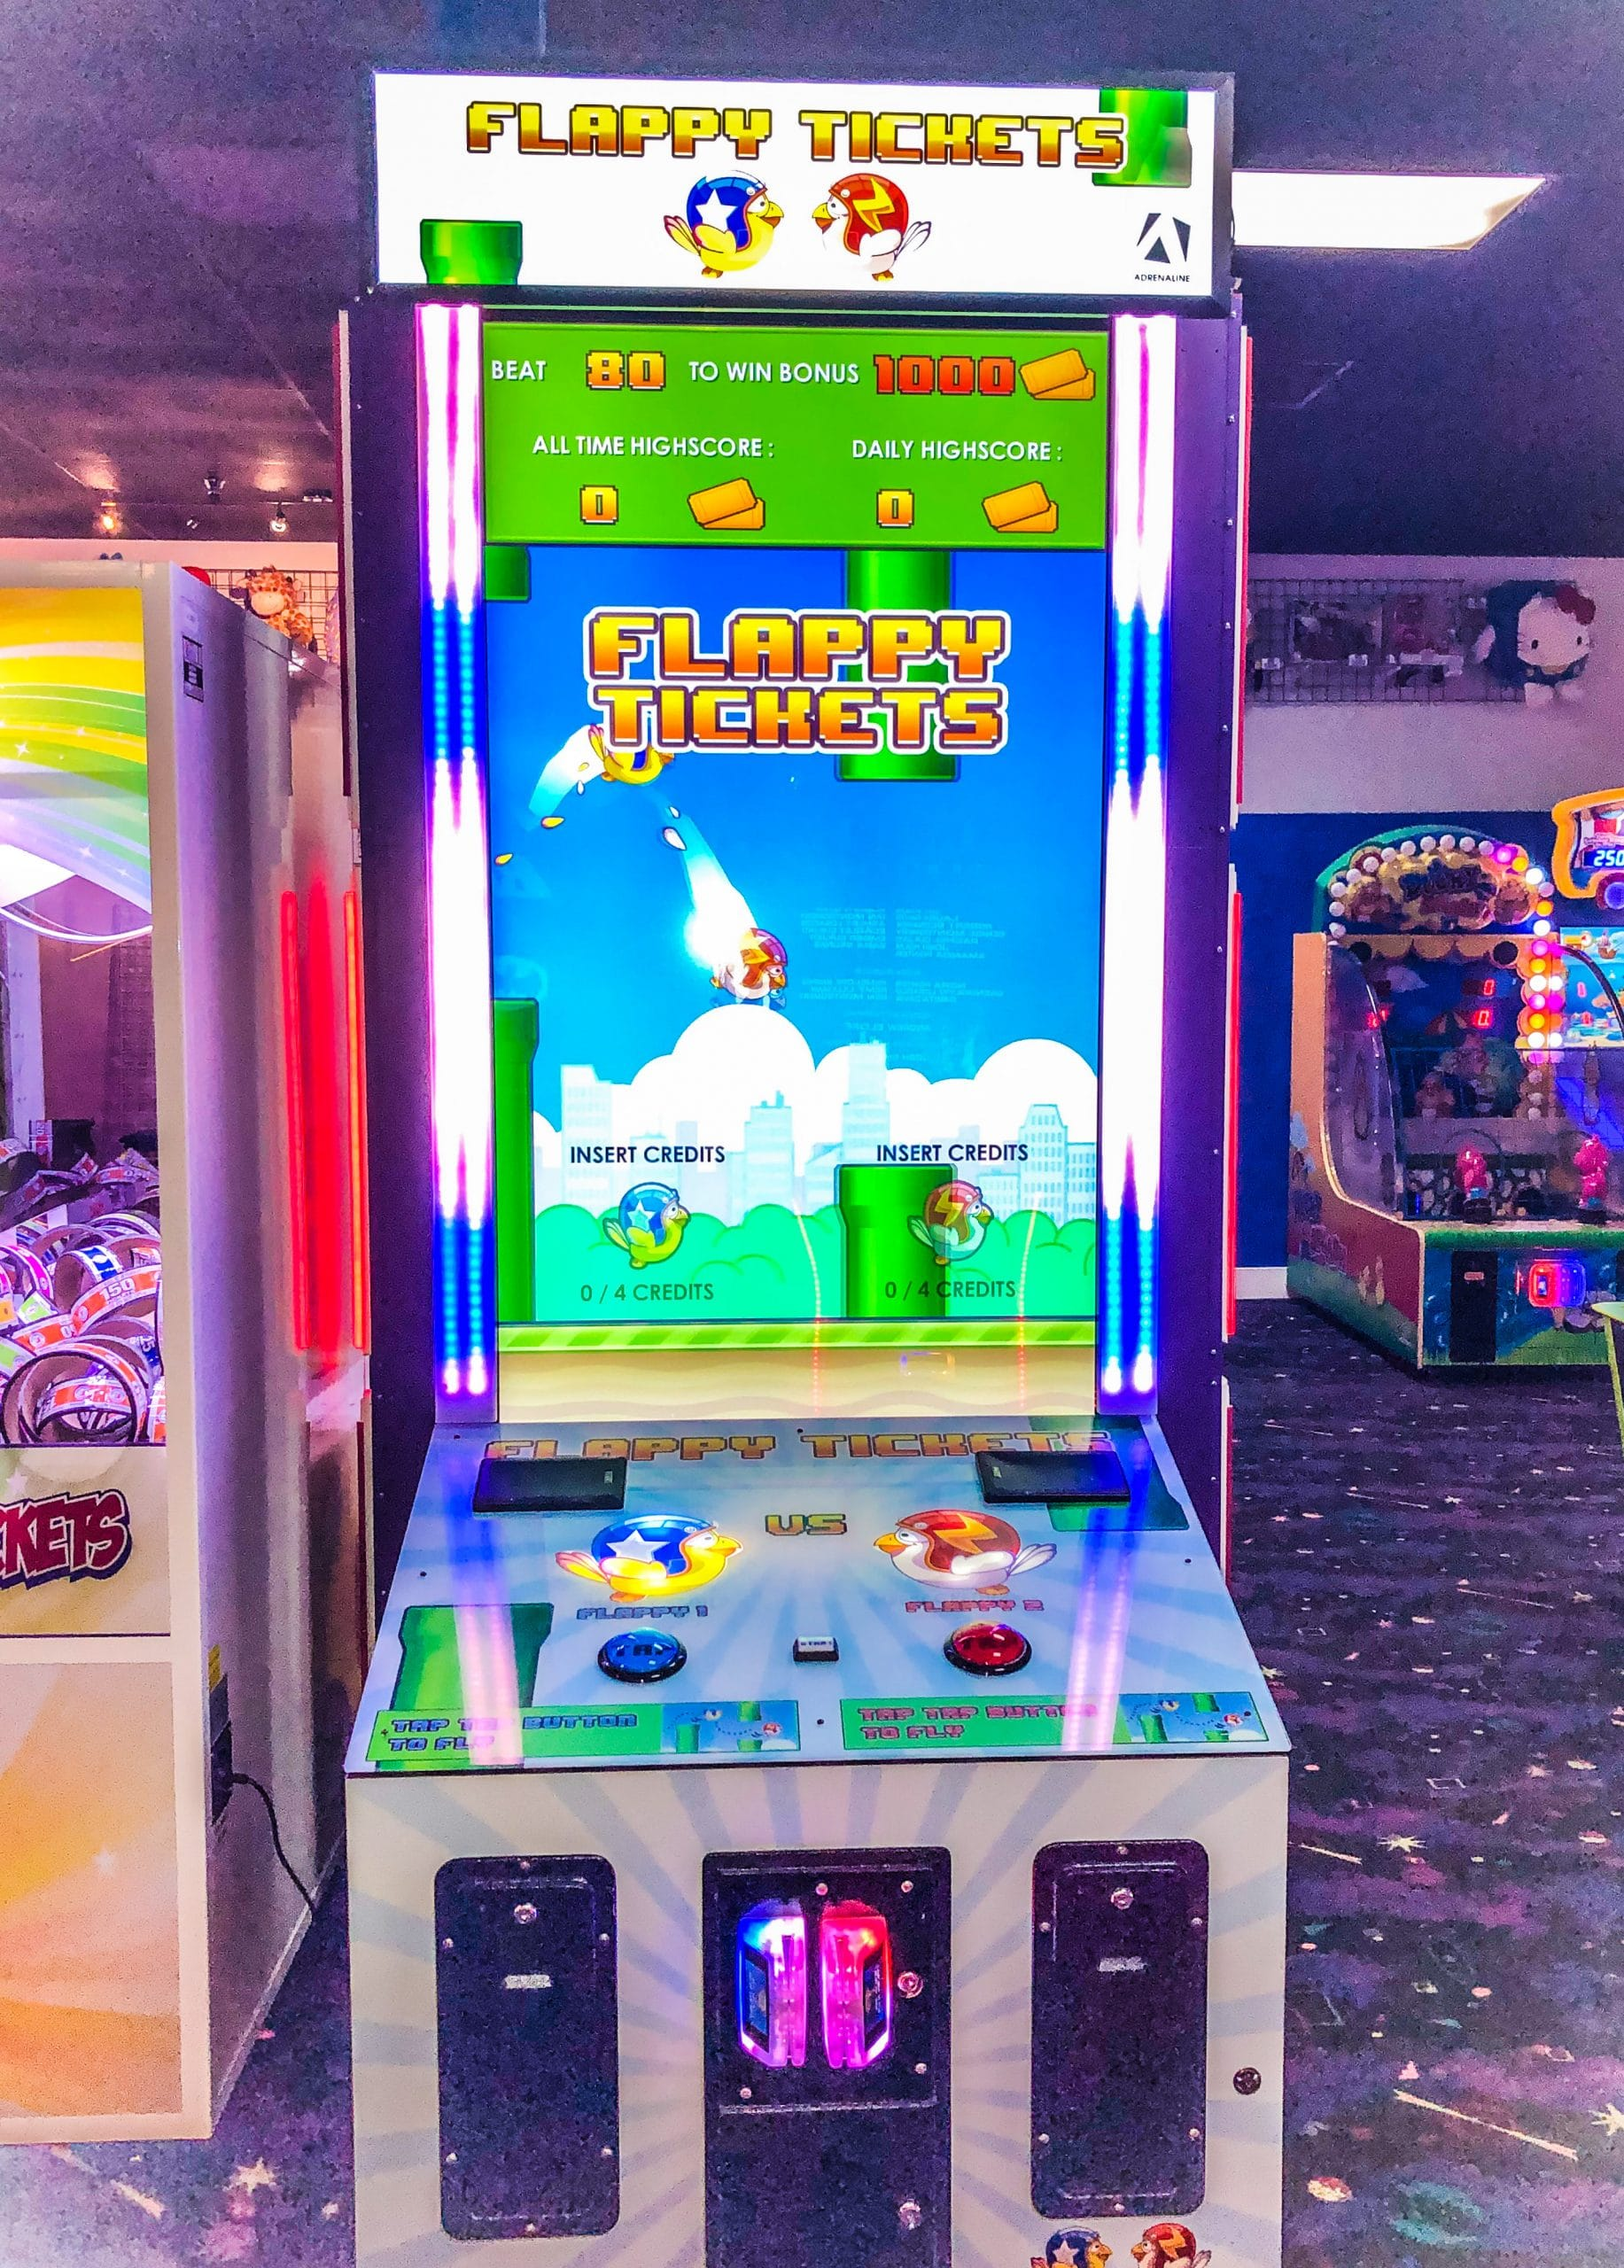 Arcade Game - Flappy Tickets